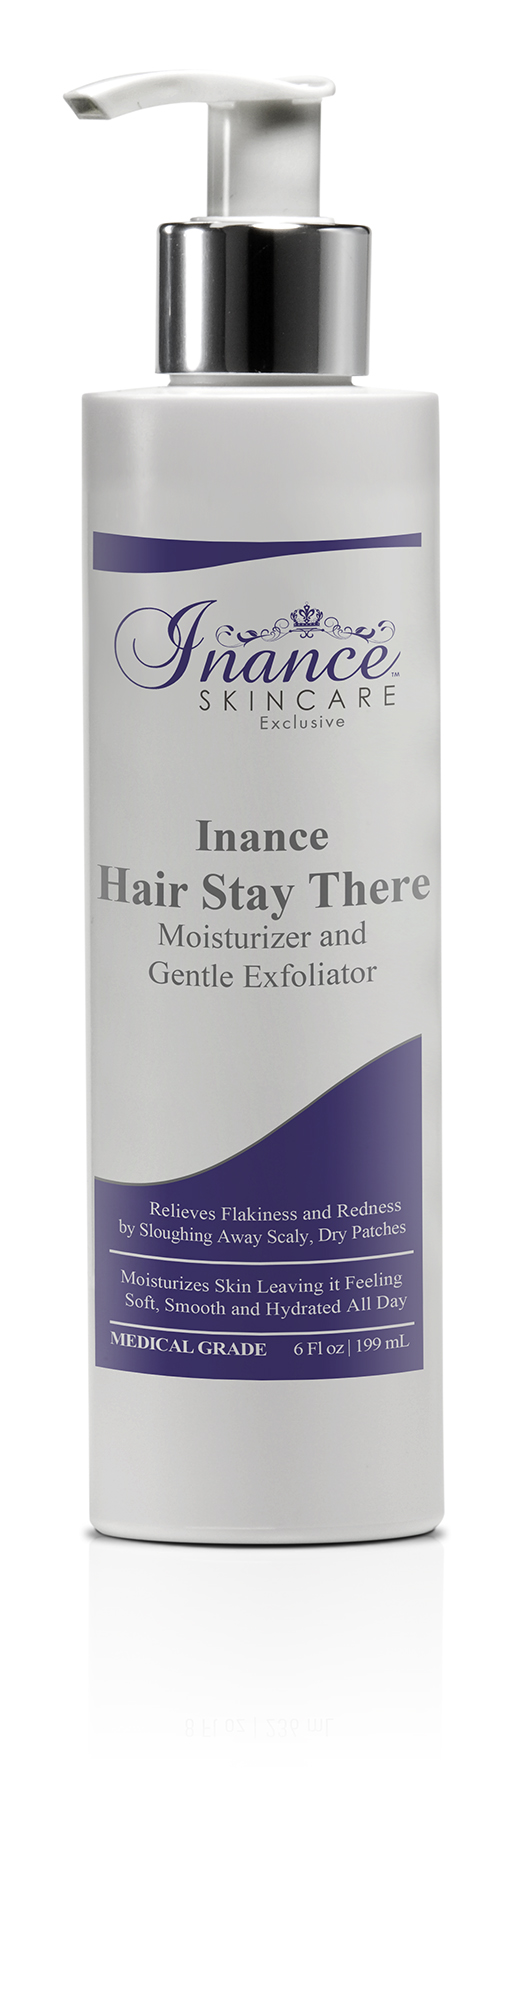 Inance Skincare Exclusive Hair Stay There Moisturizer and Gentle Exfoliator 6 oz